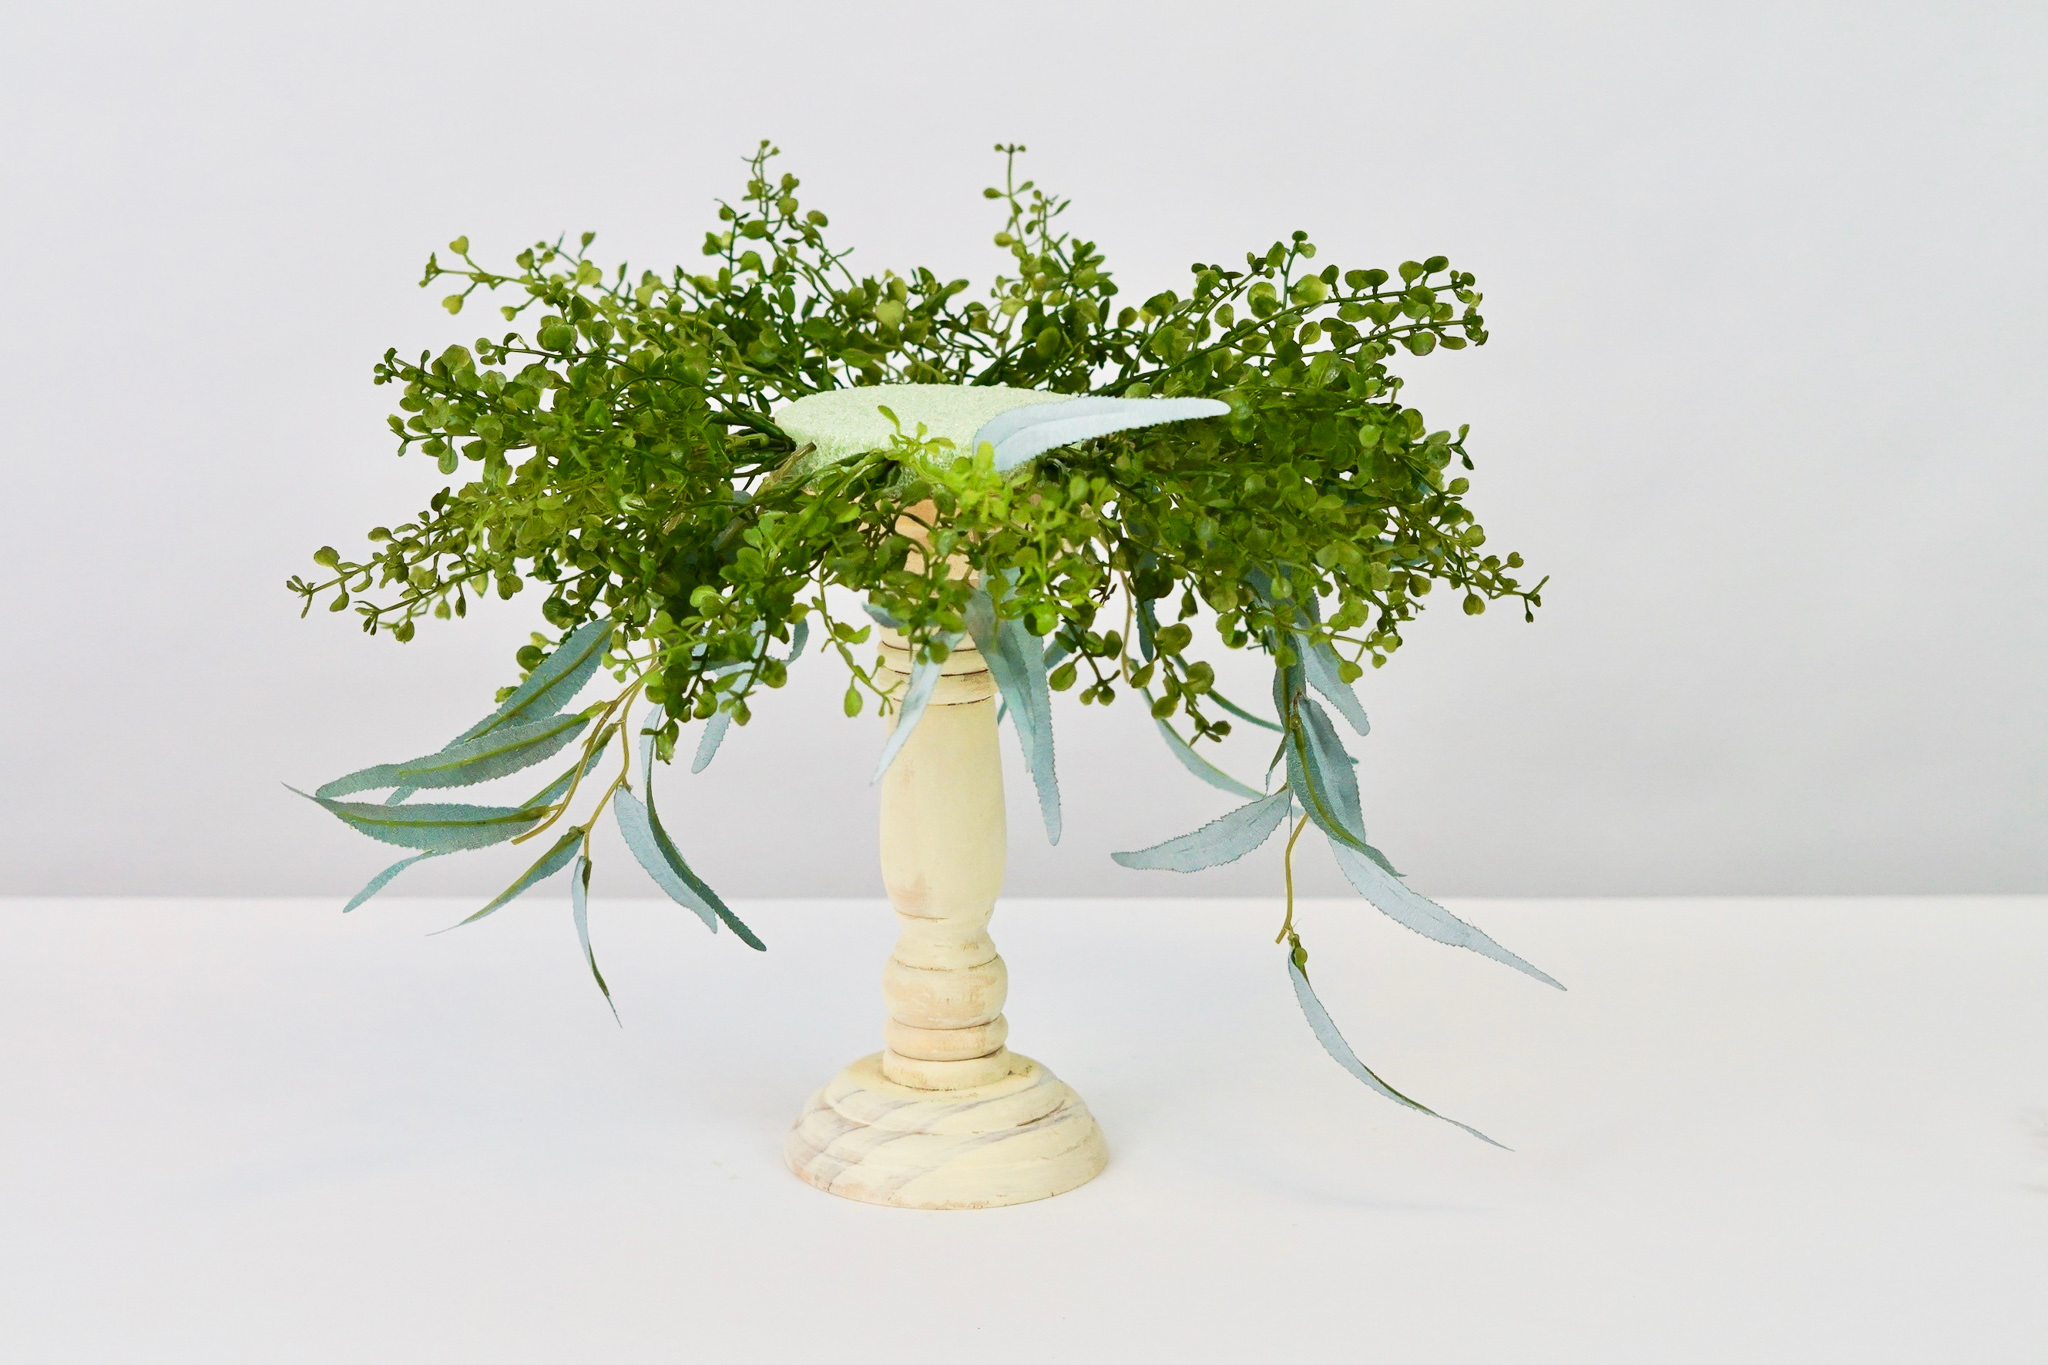 How To Make Diy Rustic Candle Holder Wedding Centerpieces